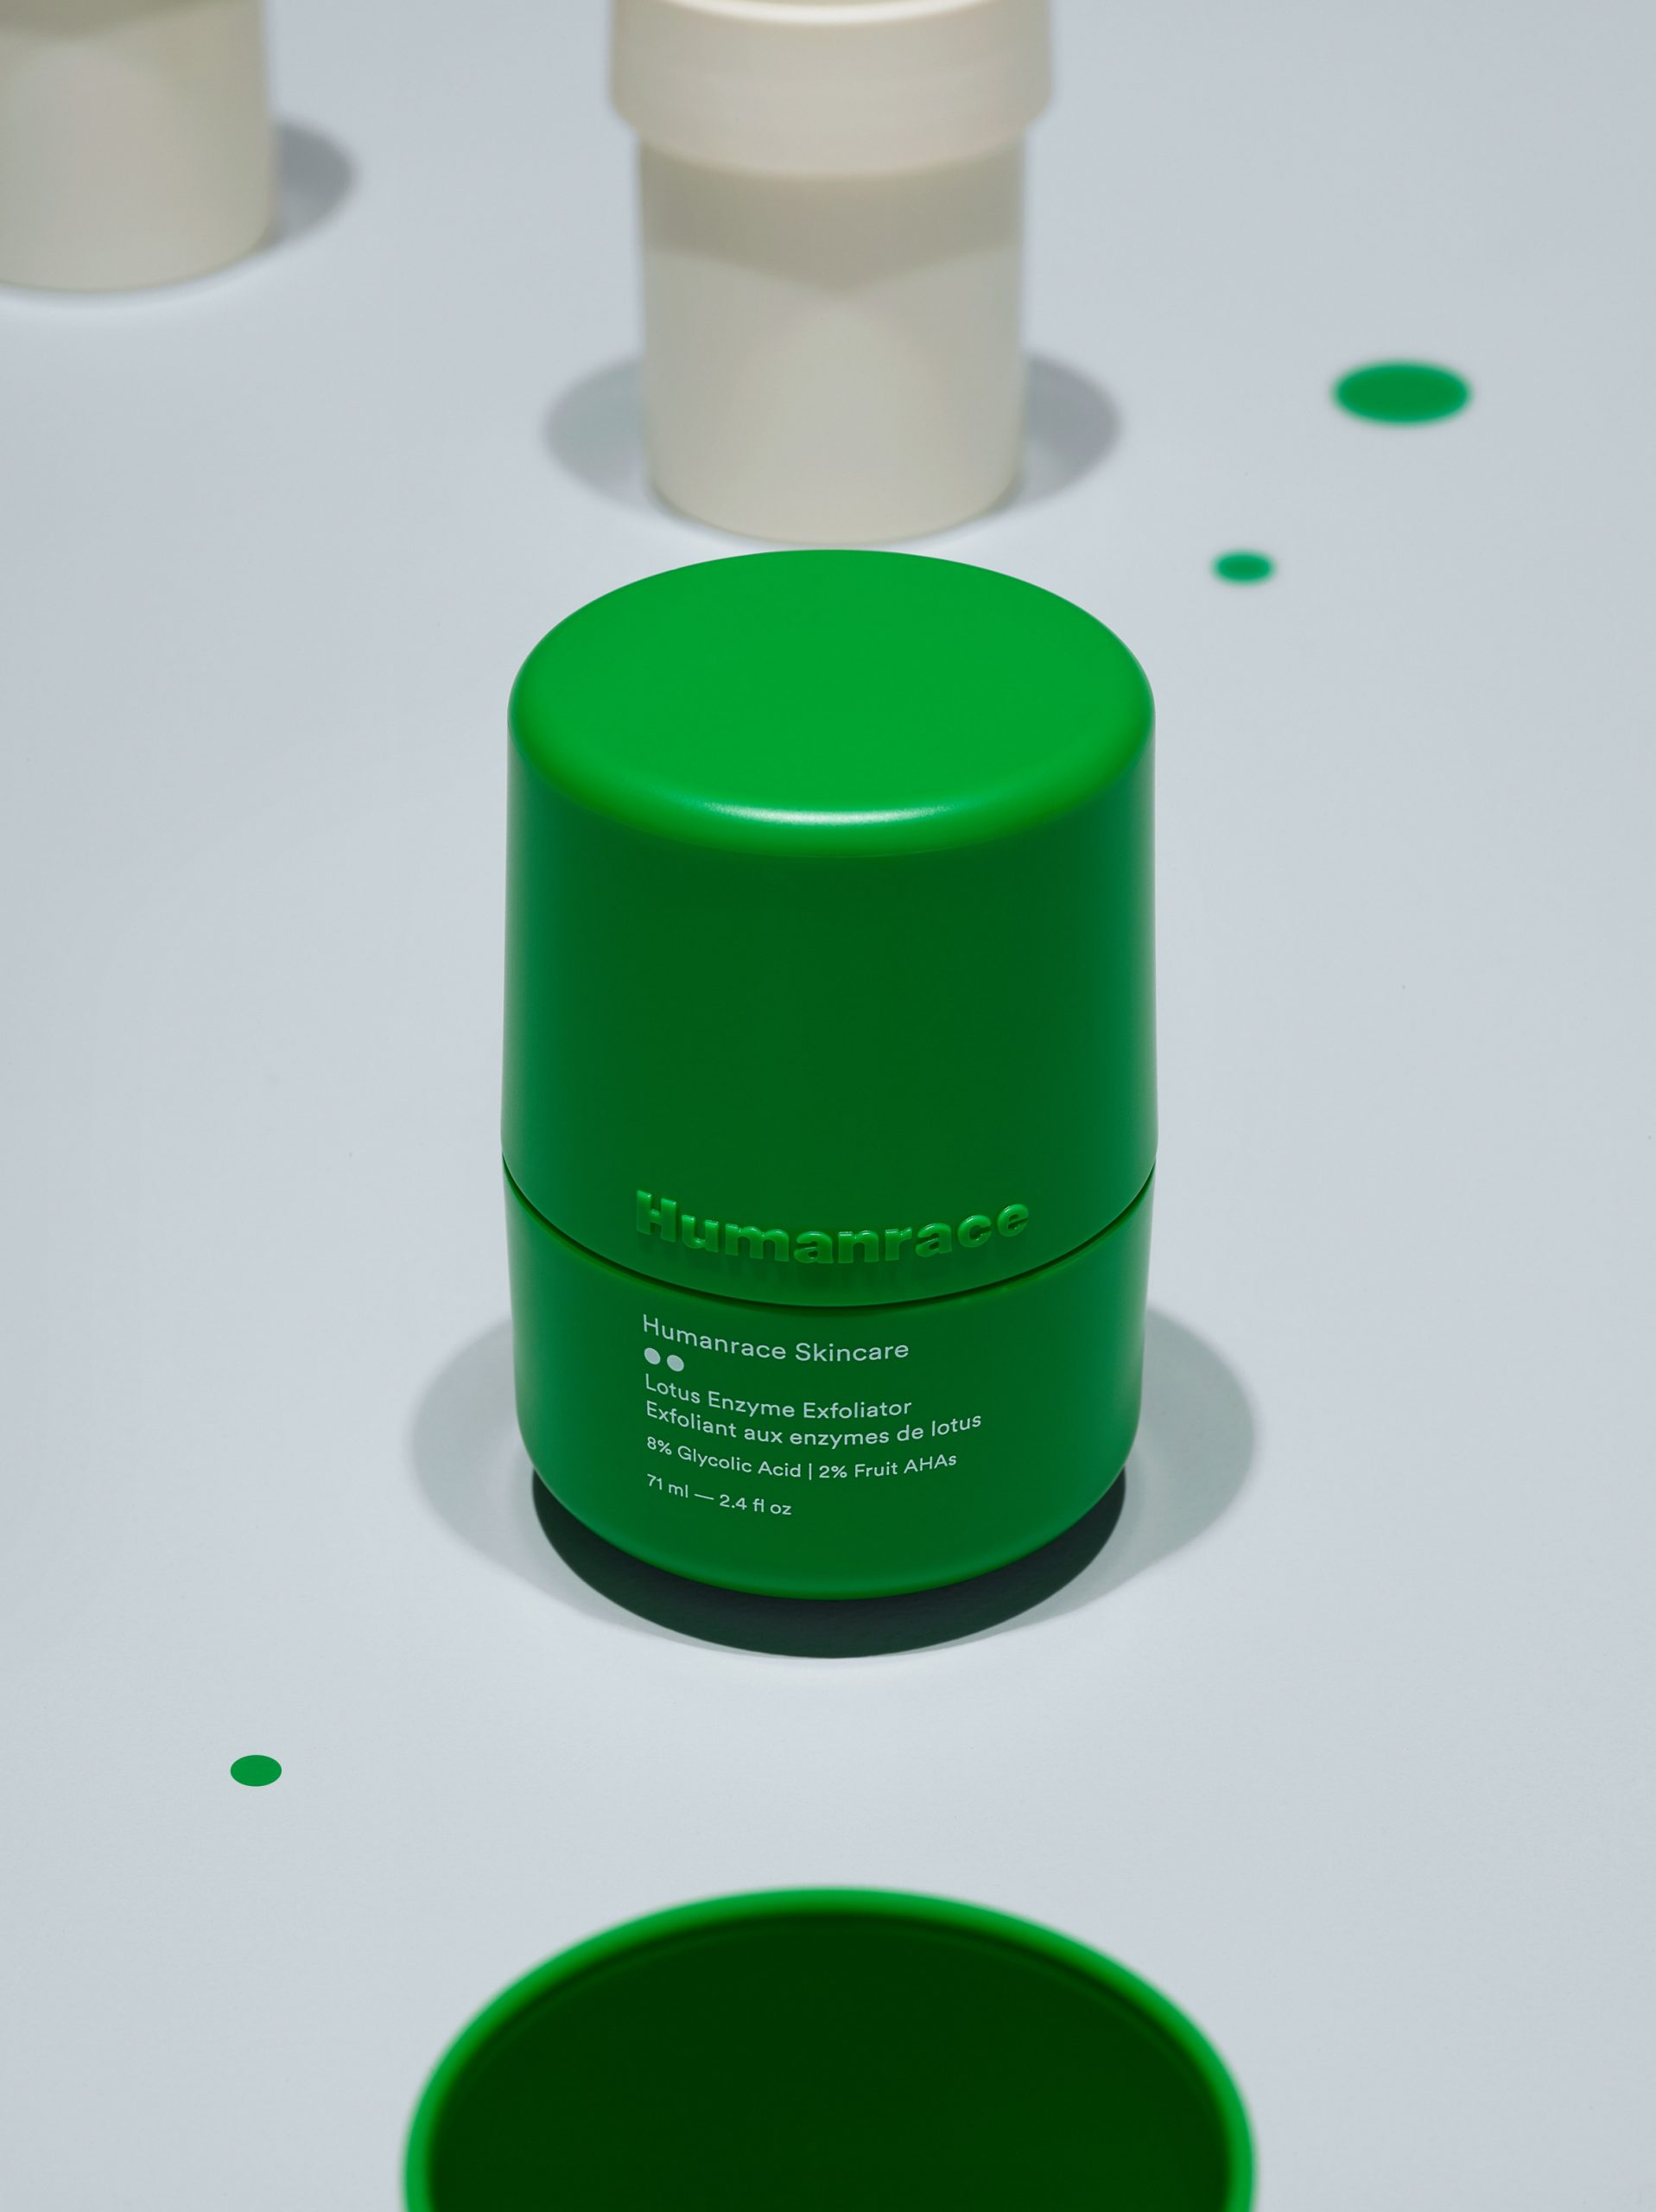 Lotus Enzyme Exfoliator, step two Humanrace by Pharrell Williams